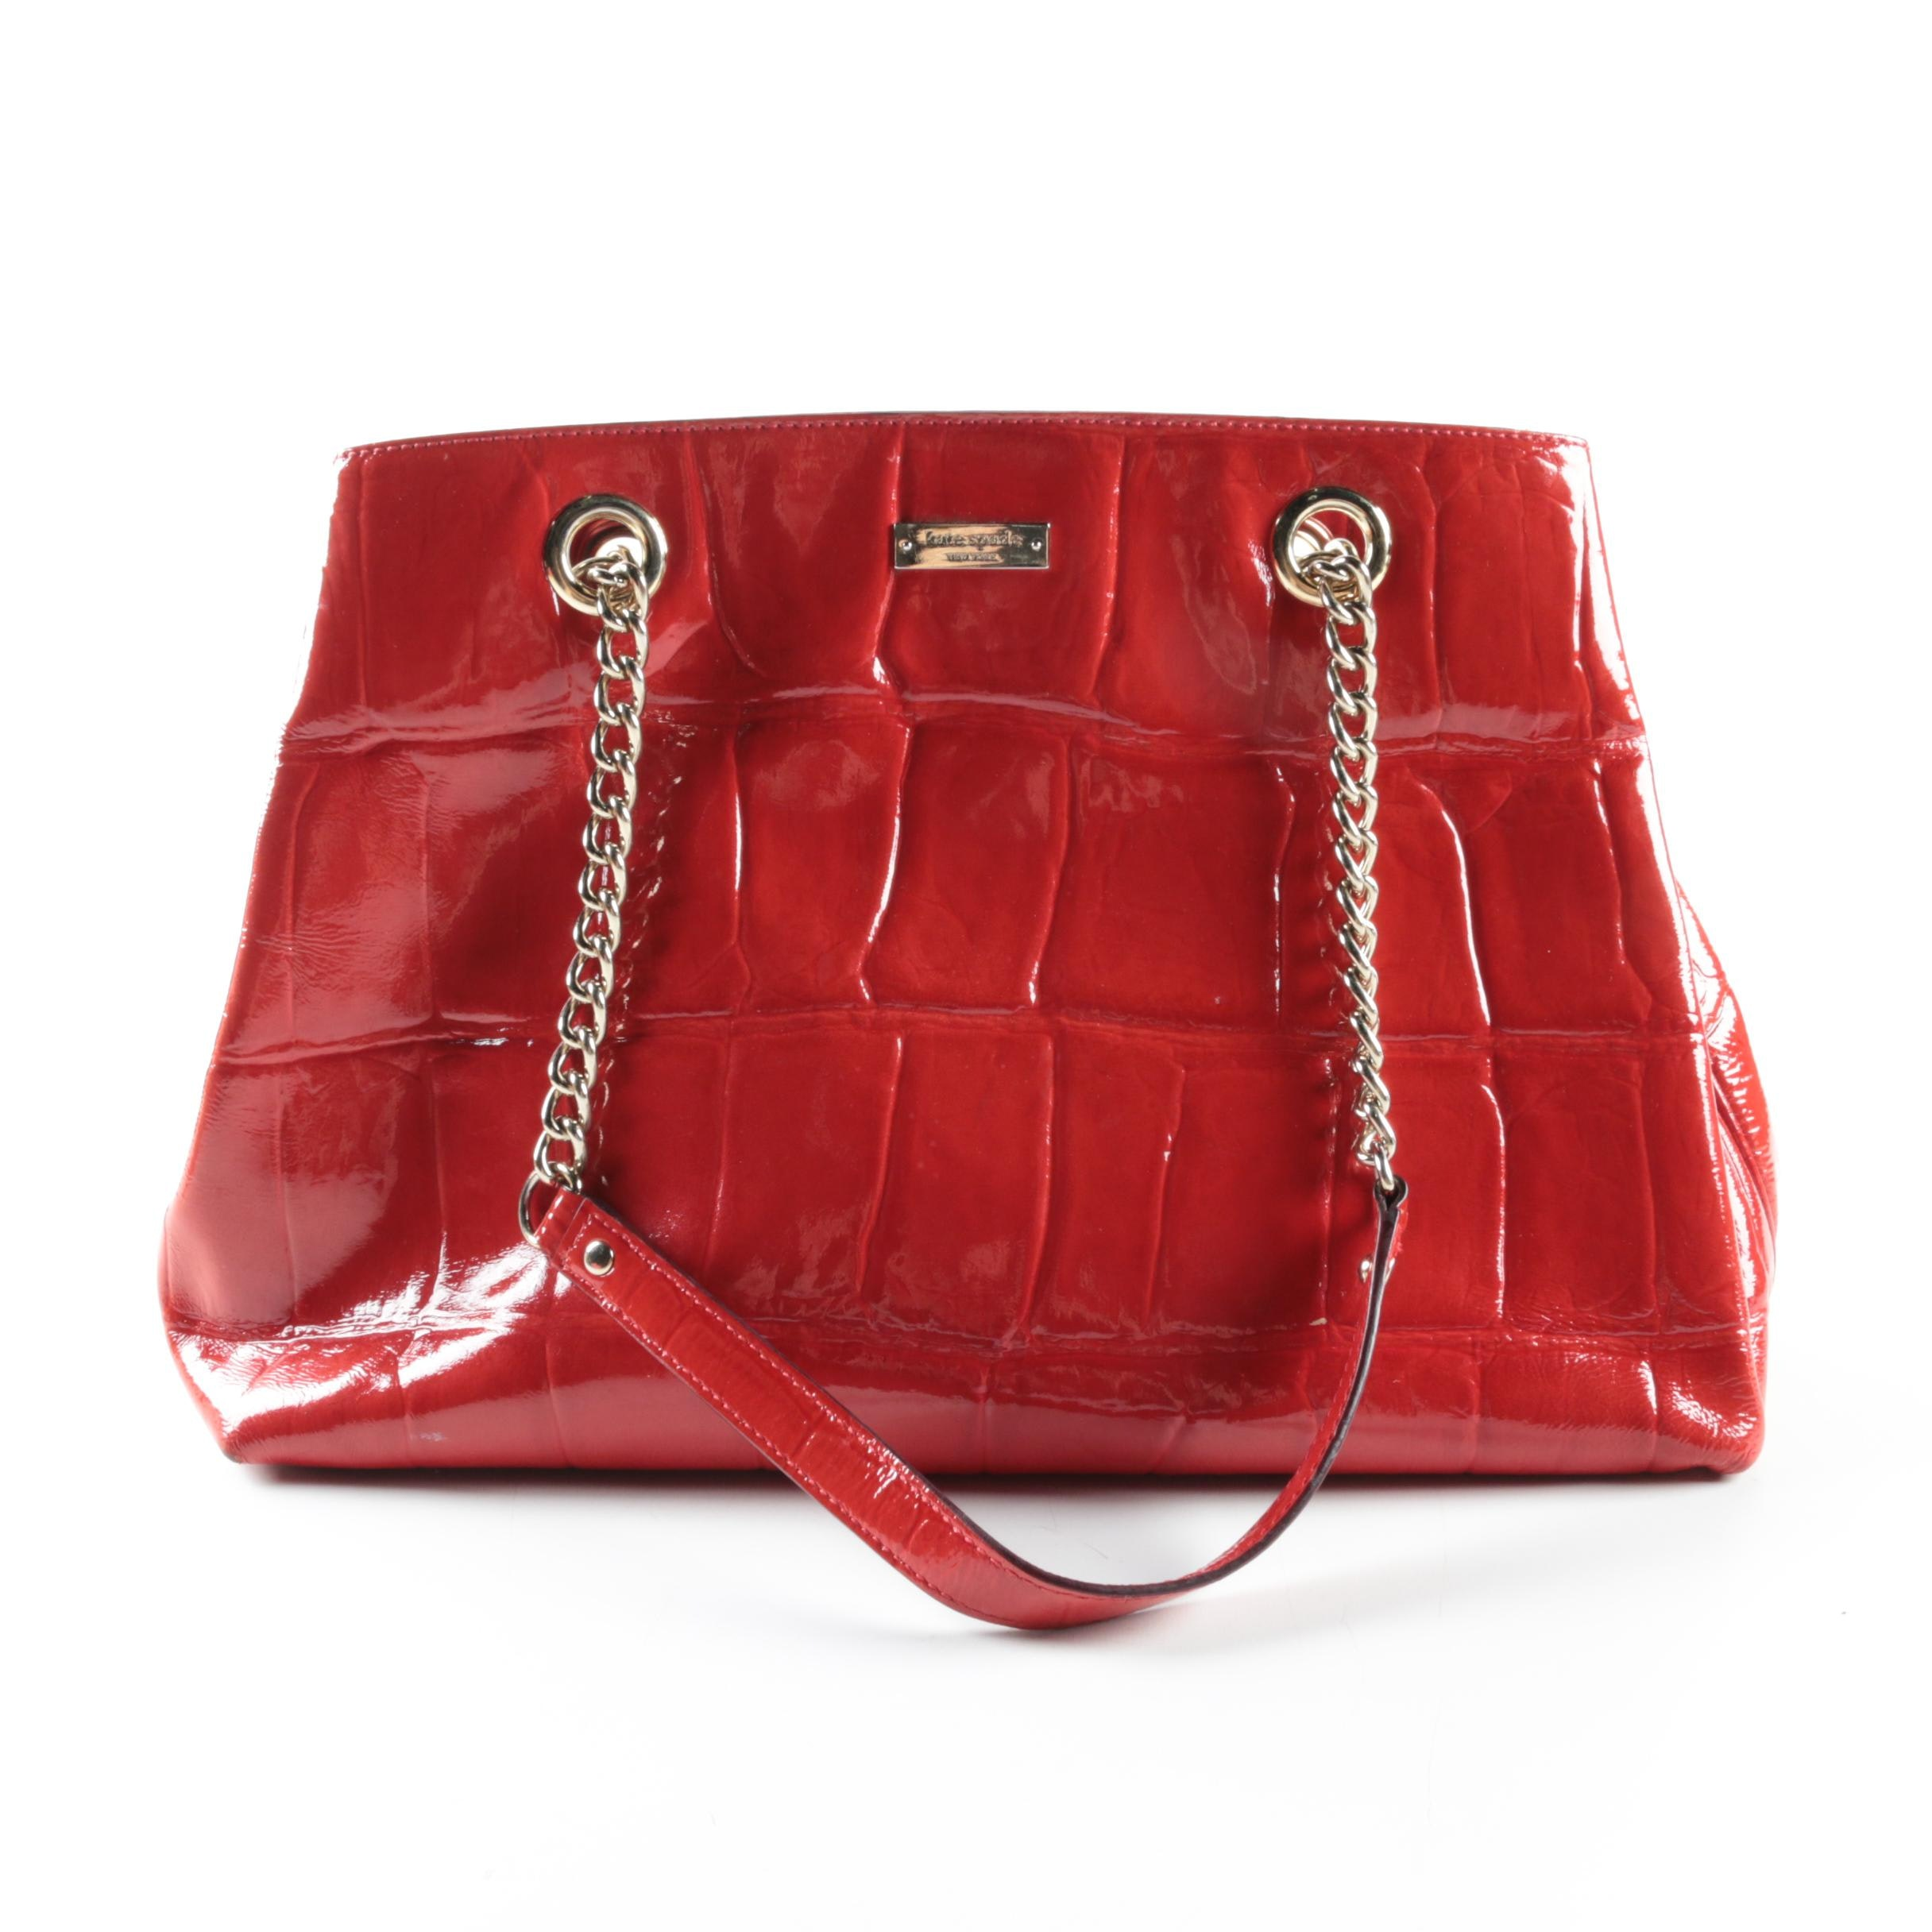 Kate Spade New York Red Crocodile Embossed Patent Leather Bag